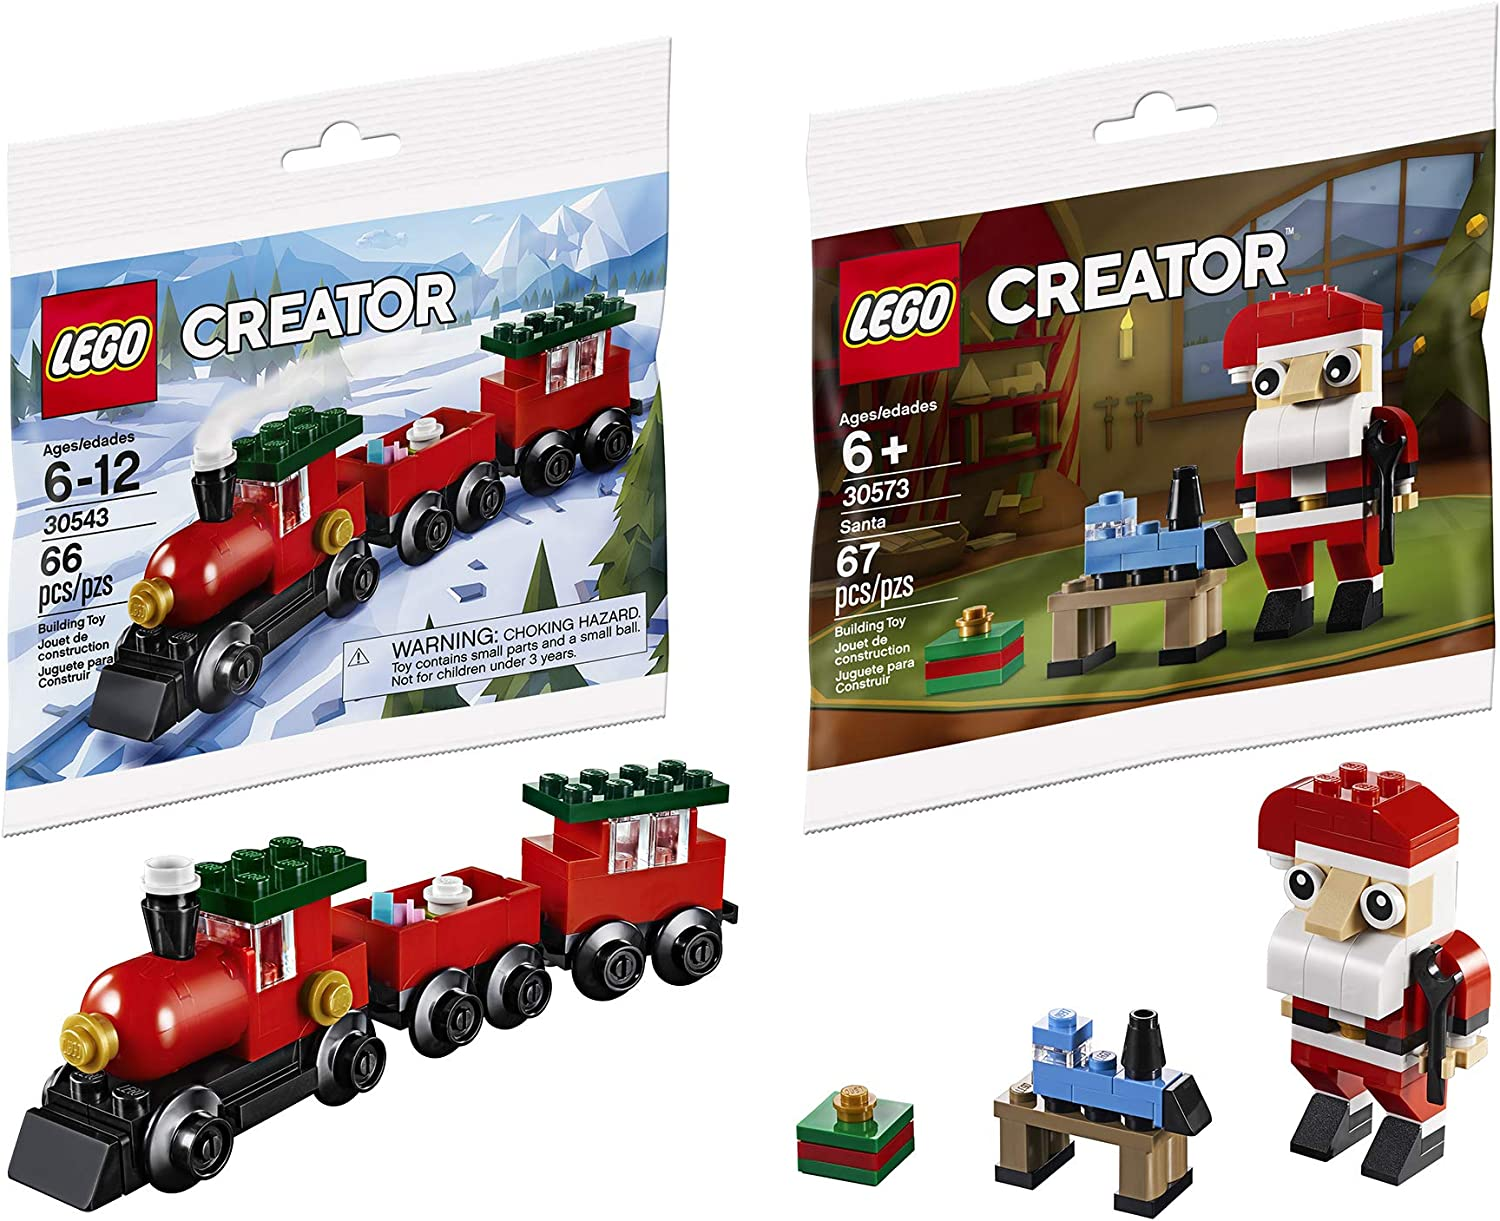 LEGO Ho! Ho! Choo! Choo! Mini Holiday Bag Pack Bundled with Train Building Block Set 30543 Toy & Creator Santa Clause 2 Items